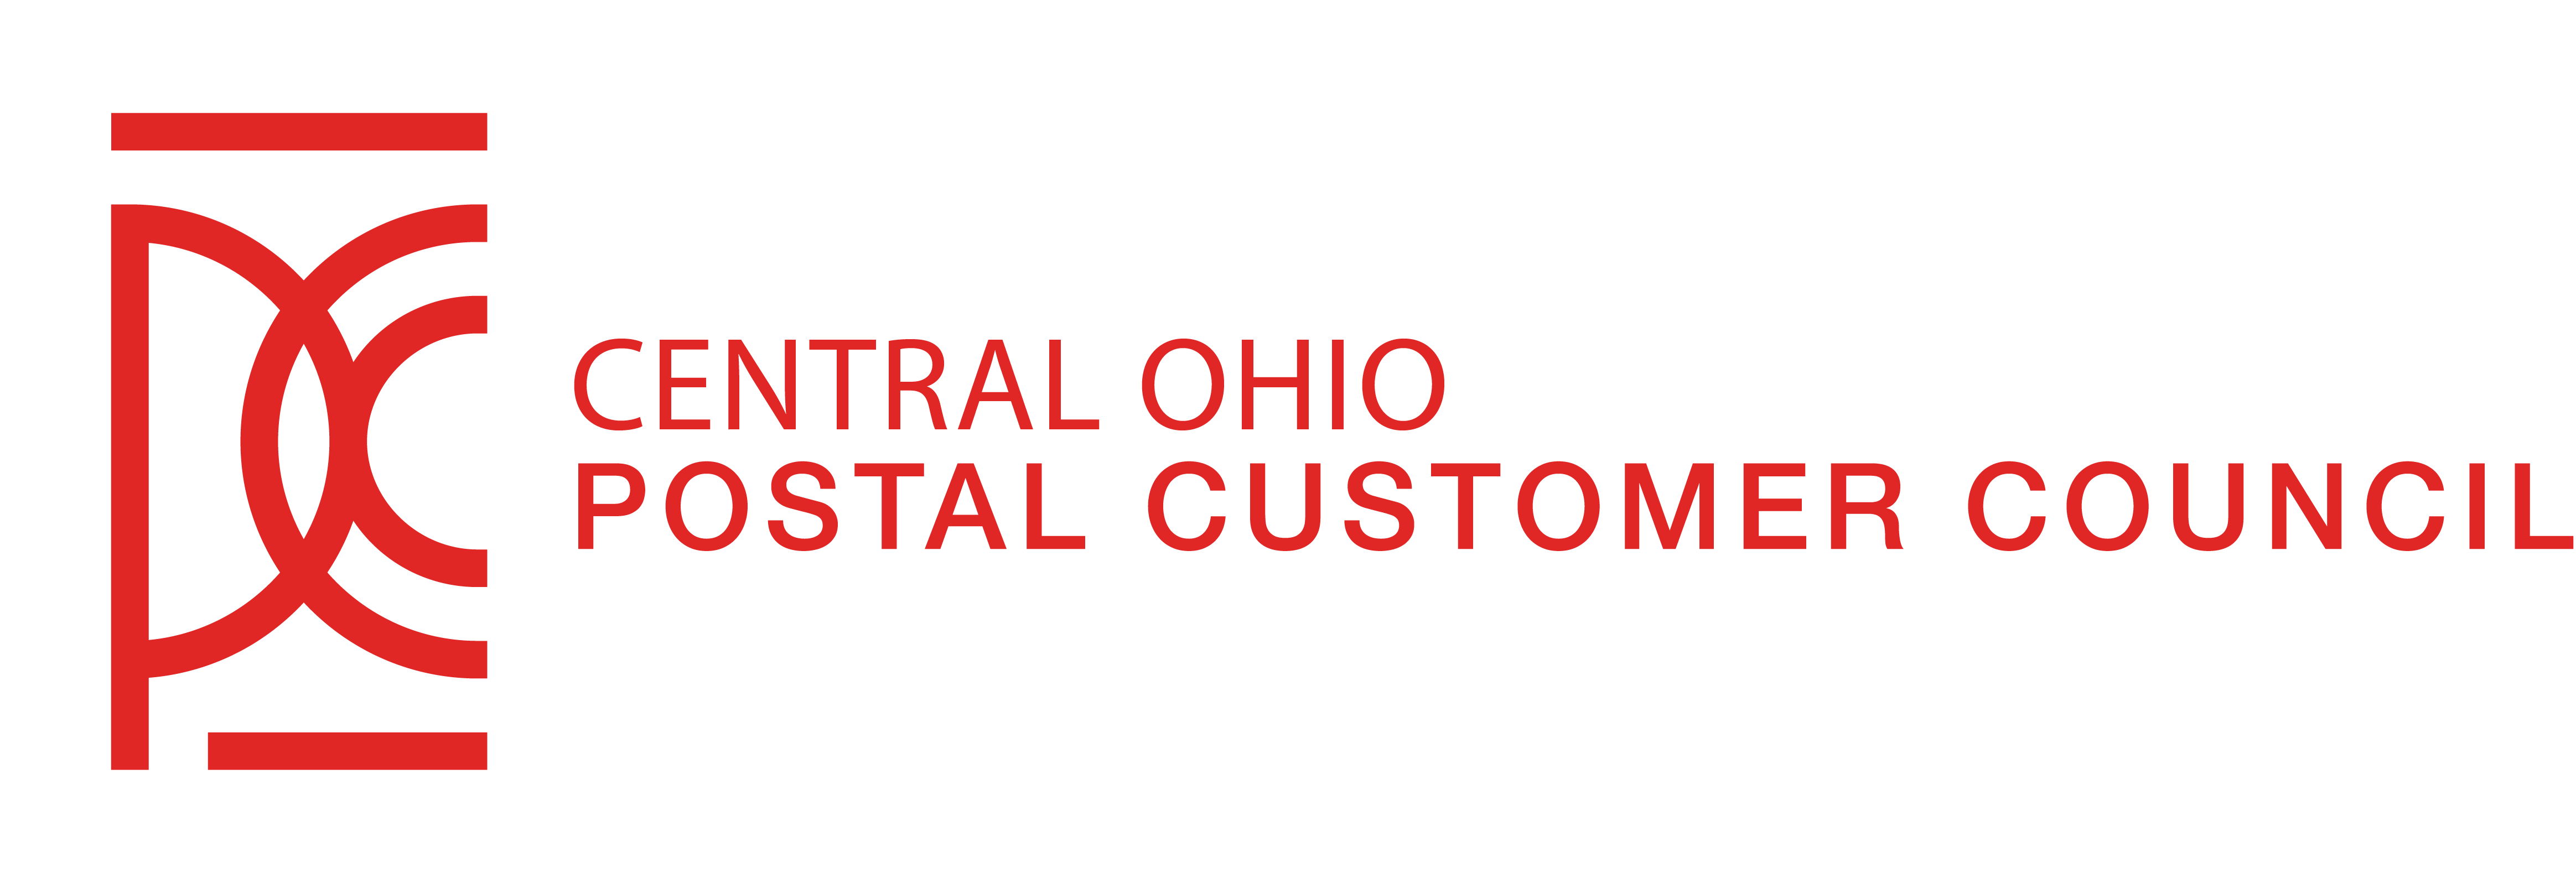 Central Ohio Postal Customer Council